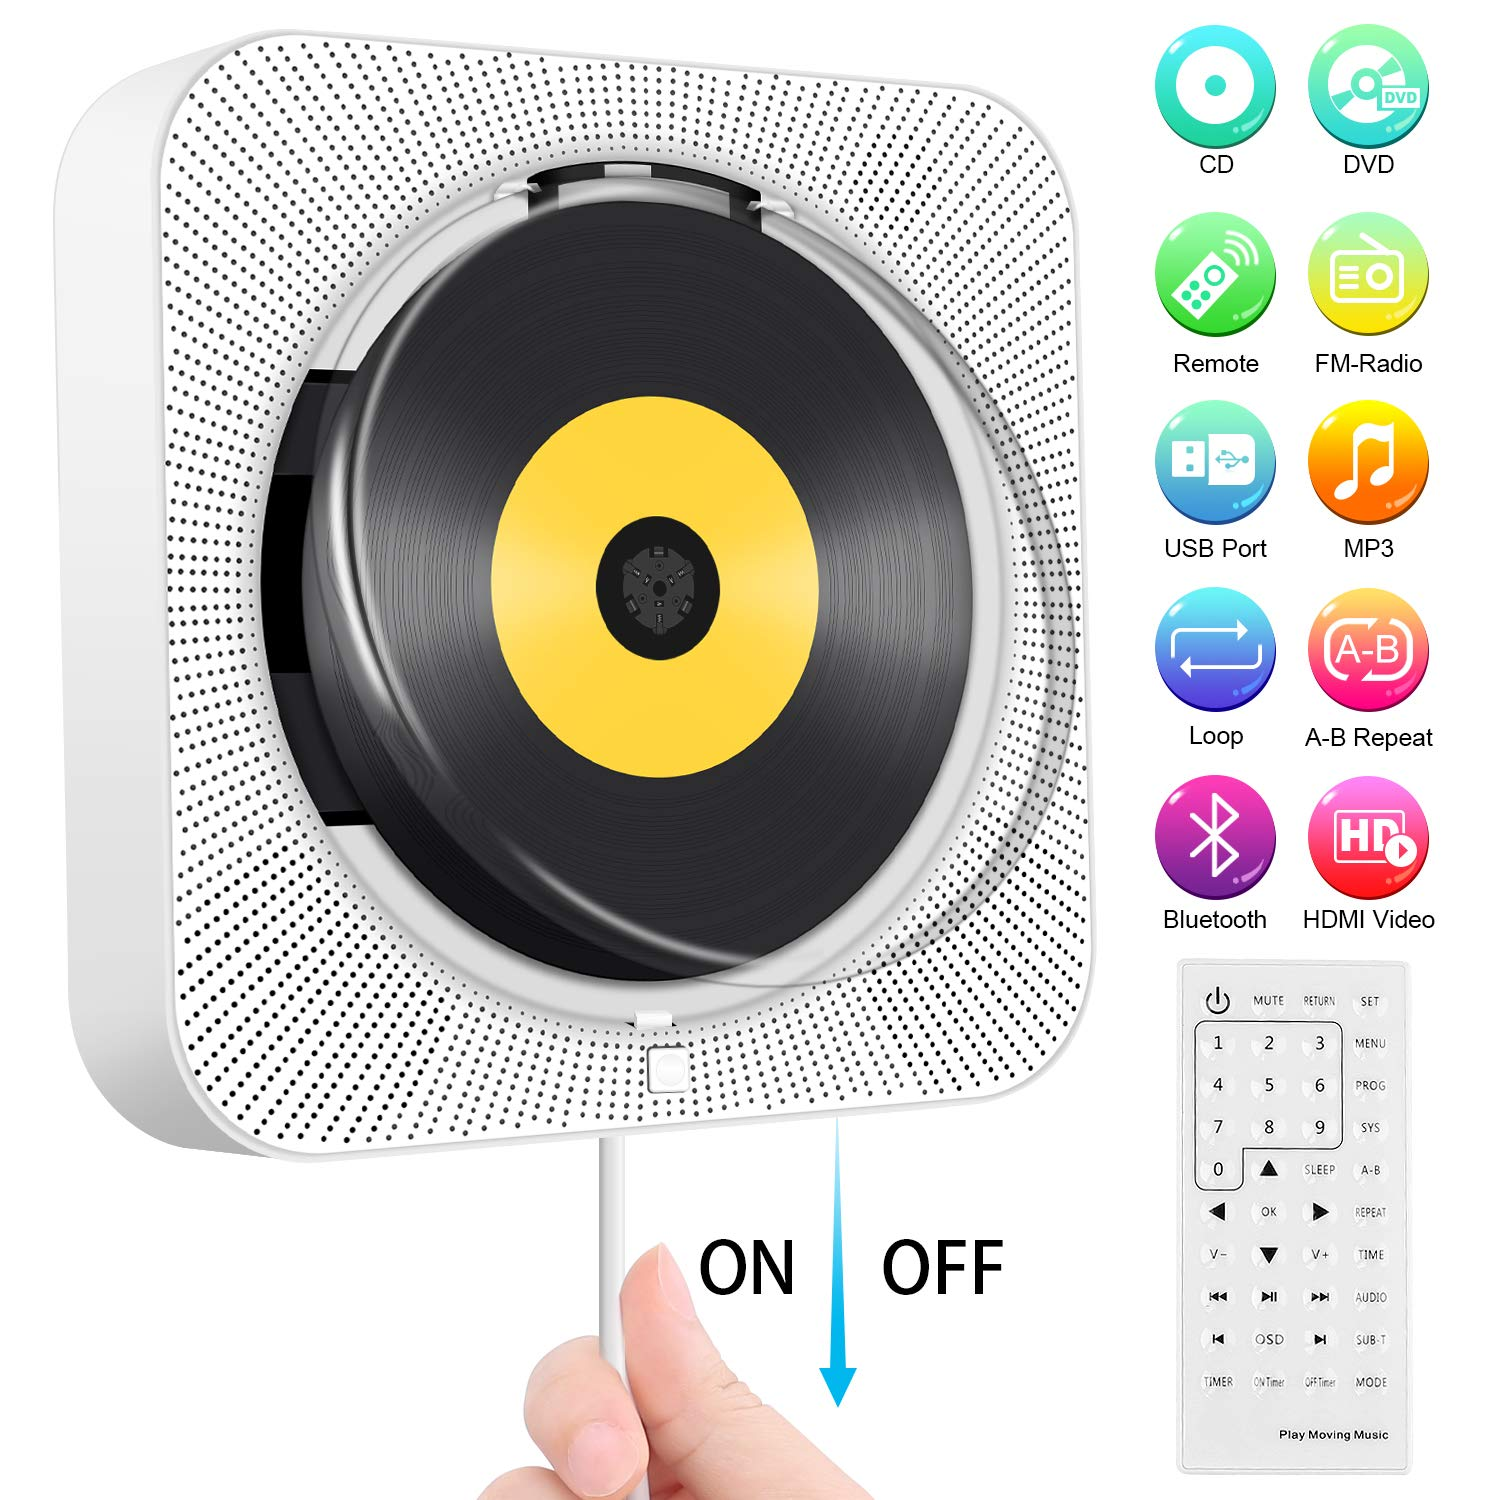 Portable DVD/CD Player, Wall Mountable Bluetooth CD DVD Player HDMI Built-in HiFi Speakers with Remote for TV, Music Player Support FM Radio USB Playing SD Card AV Jack 3.5mm Headphone Jack for kids